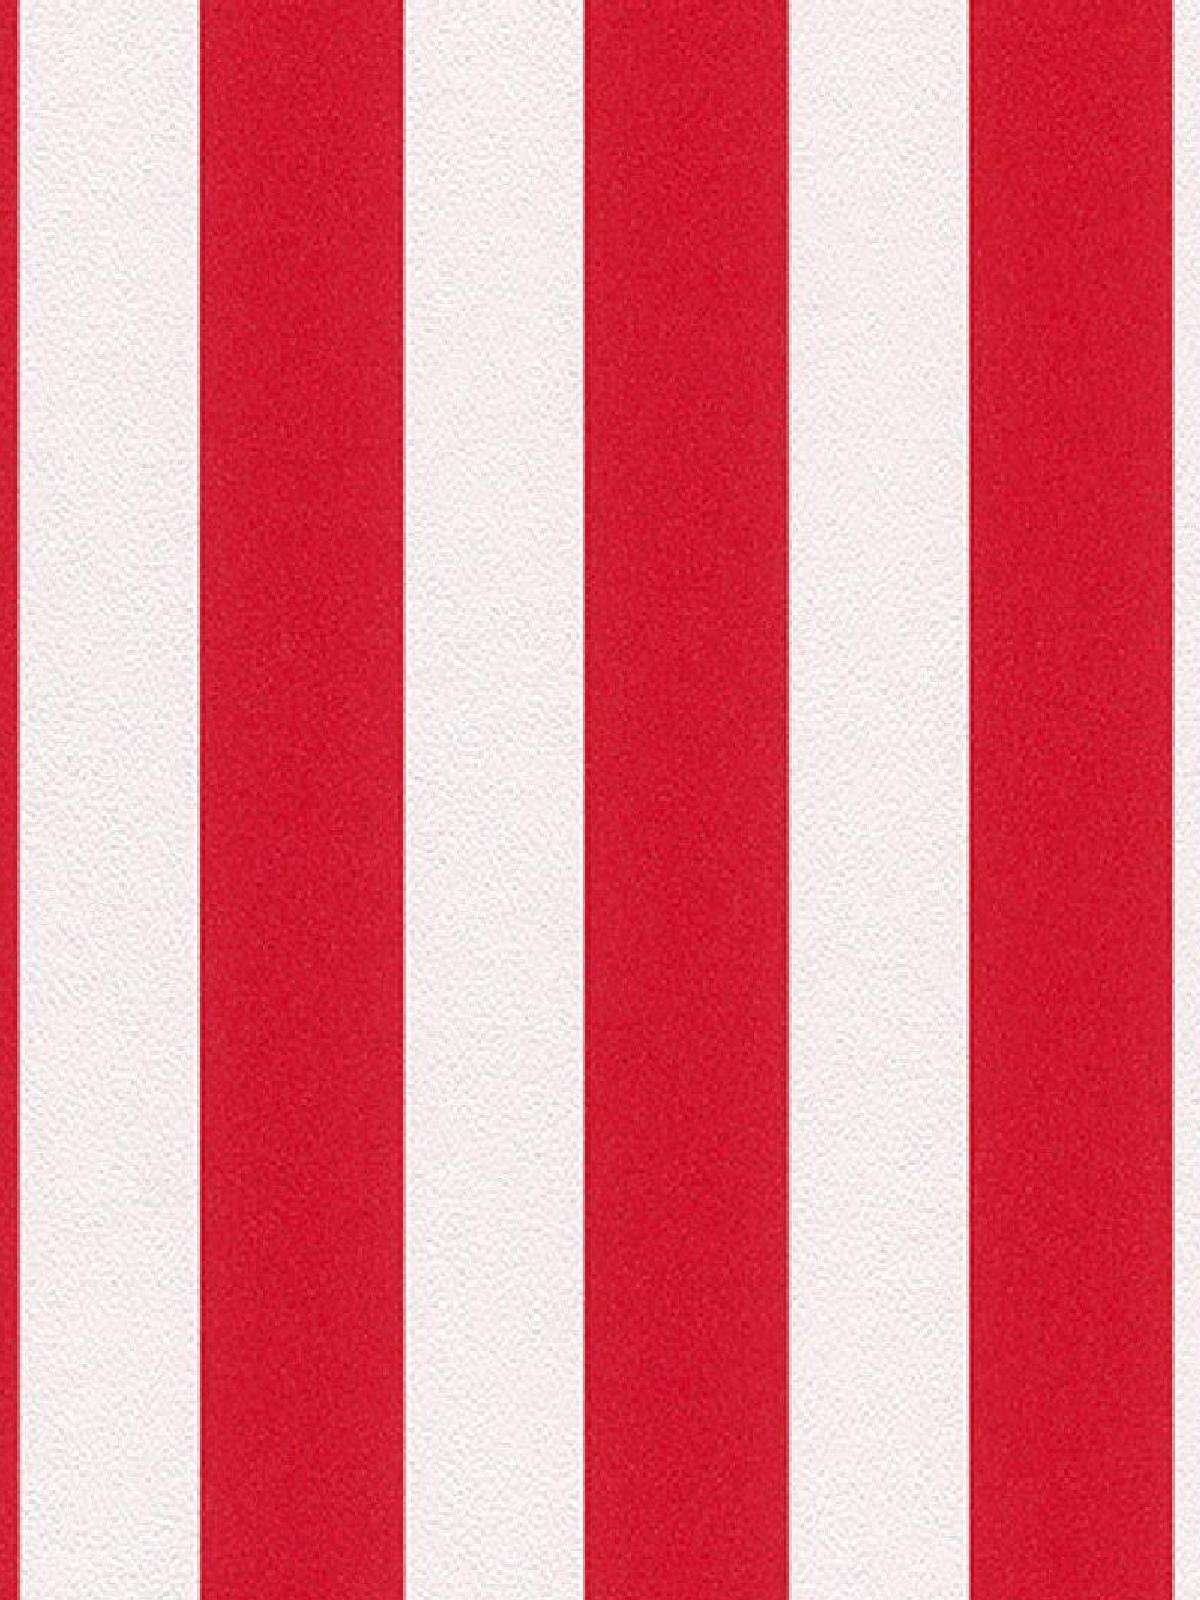 Download Red And White Striped Wallpaper Gallery